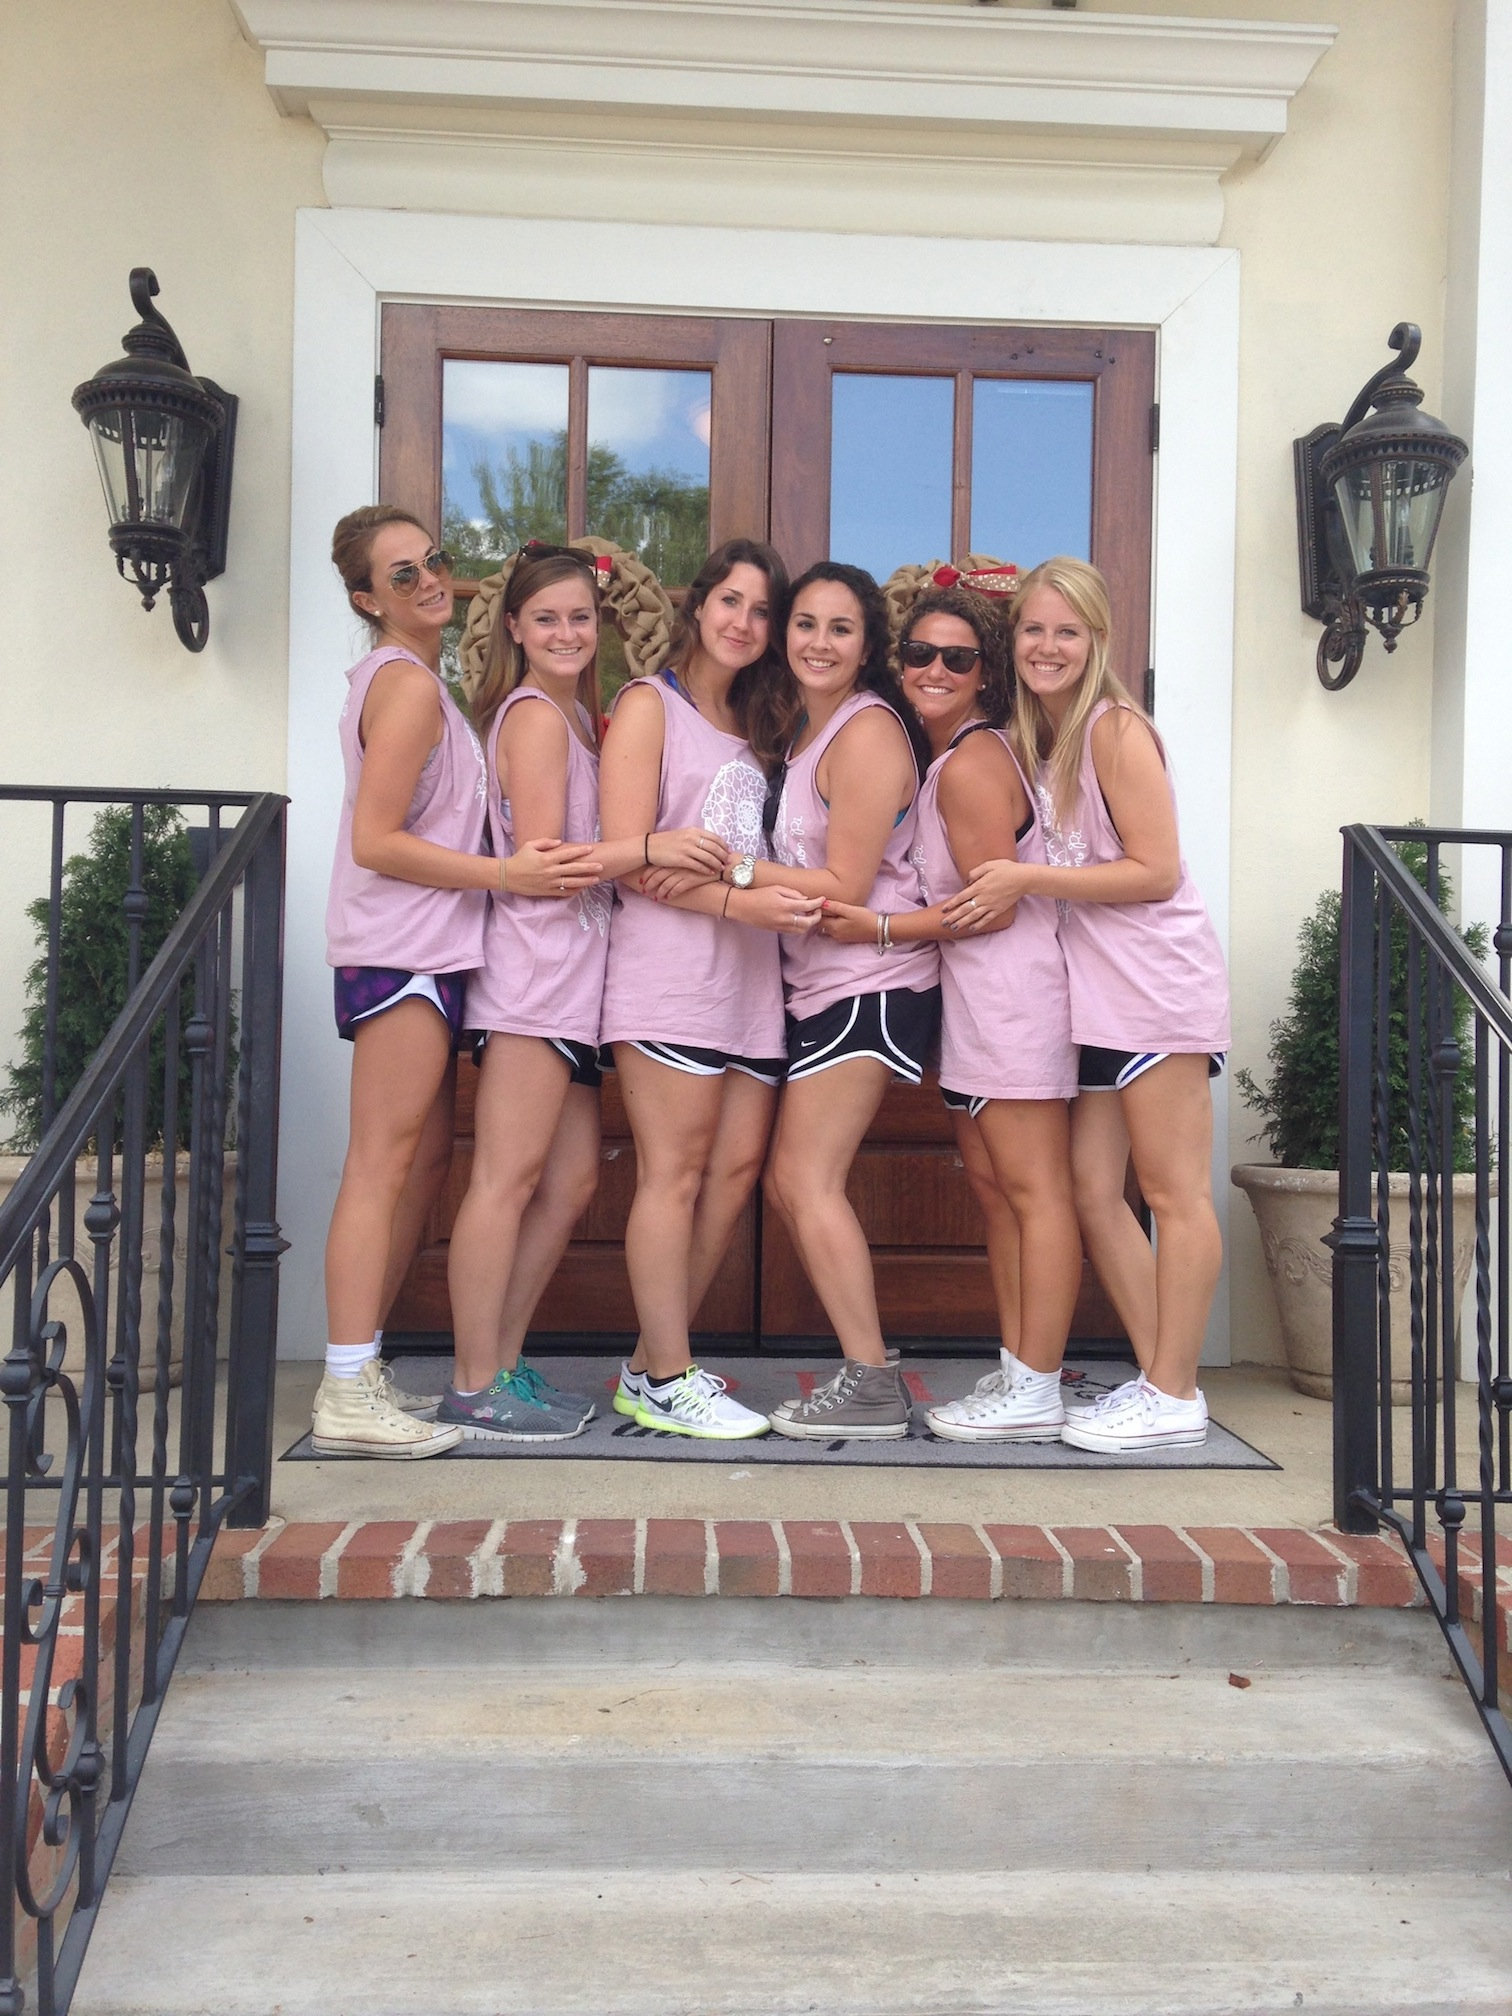 20 Reasons You Know You're In A Southern Sorority